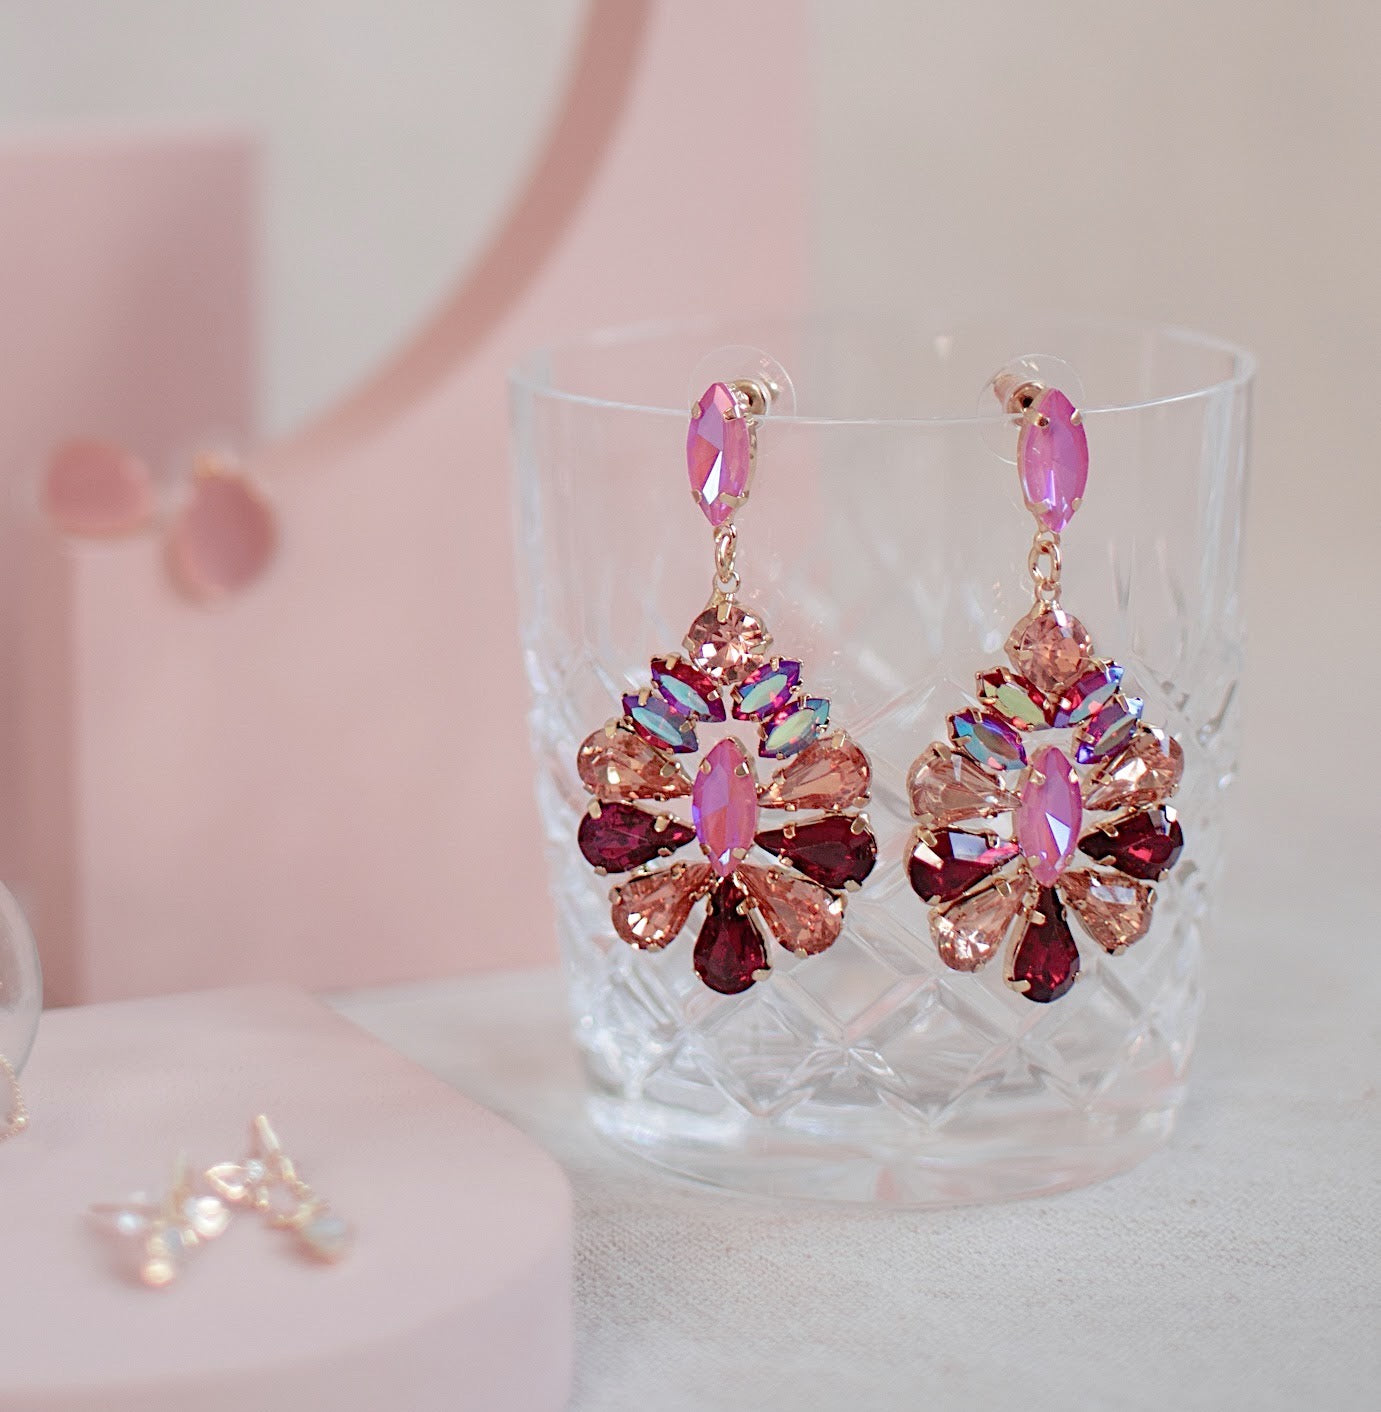 Jaylie Jewel Earrings (Margarita)